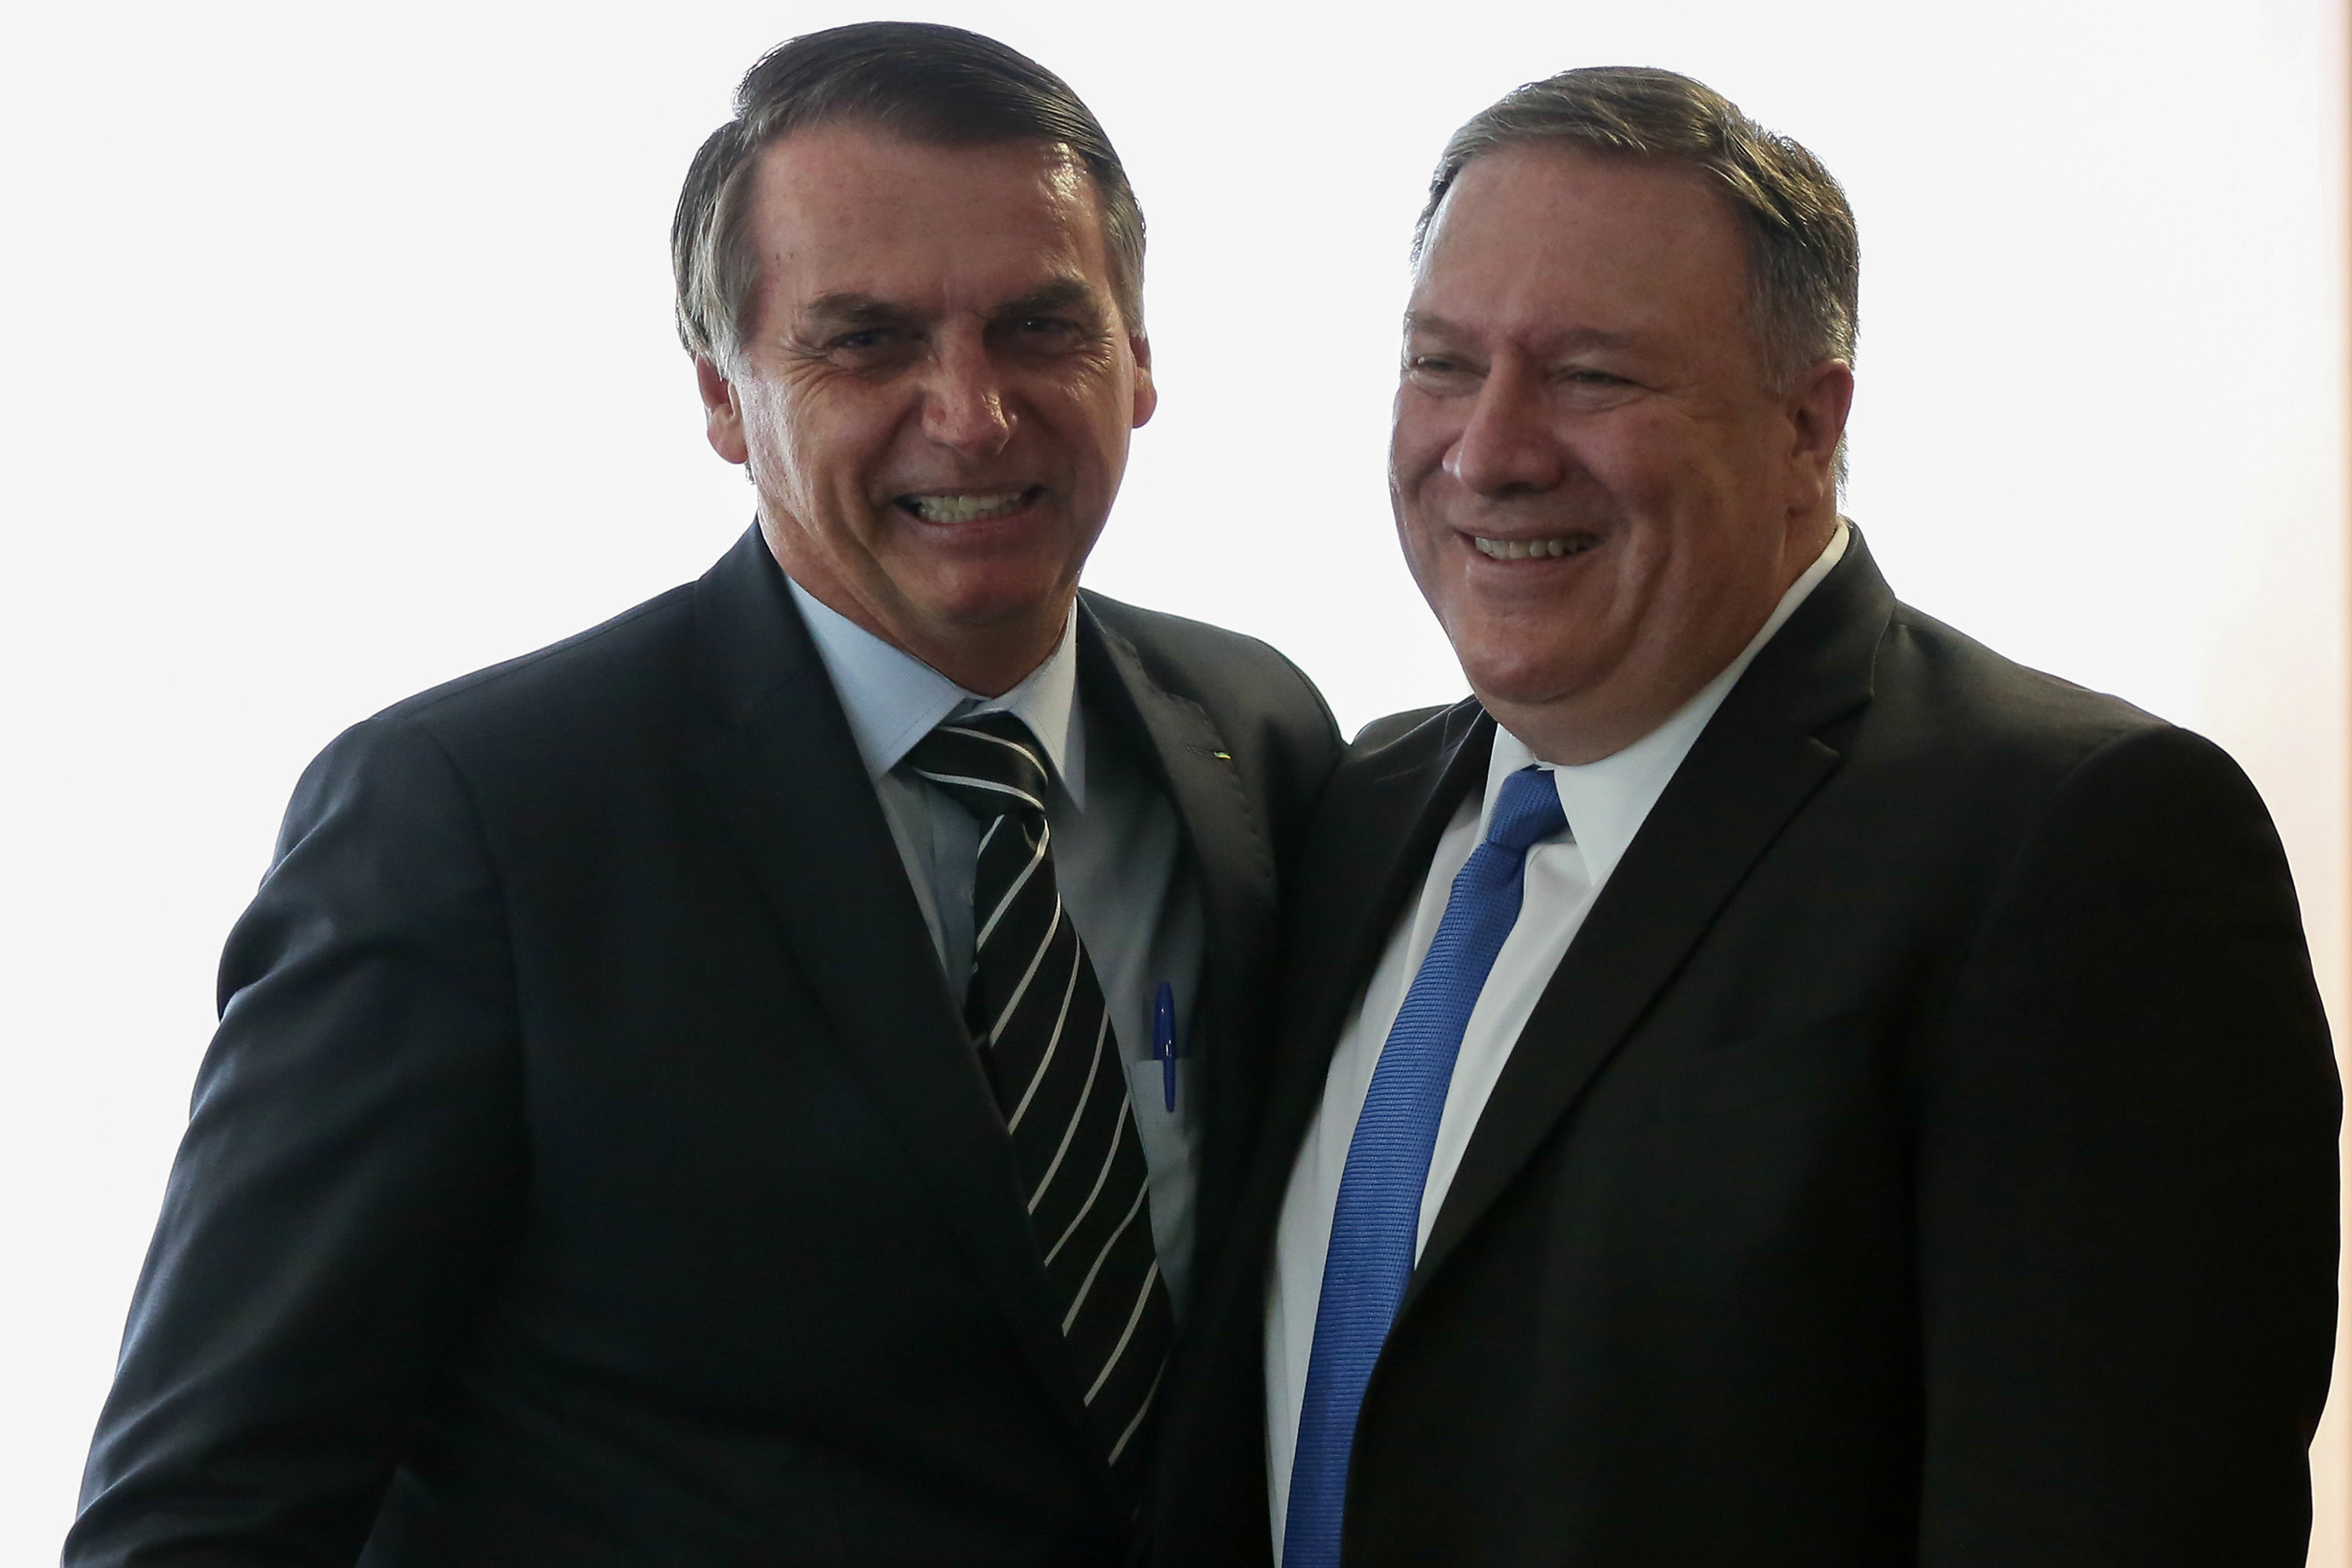 U.S. Secretary of State Mike Pompeo attends a meeting with Brazil's President Jair Bolsonaro in Brasilia, Brazil January 2, 2019, Marcos Correa/Presidency/Handout via REUTERS ATTENTION EDITORS - THIS IMAGE HAS BEEN SUPPLIED BY A THIRD PARTY.